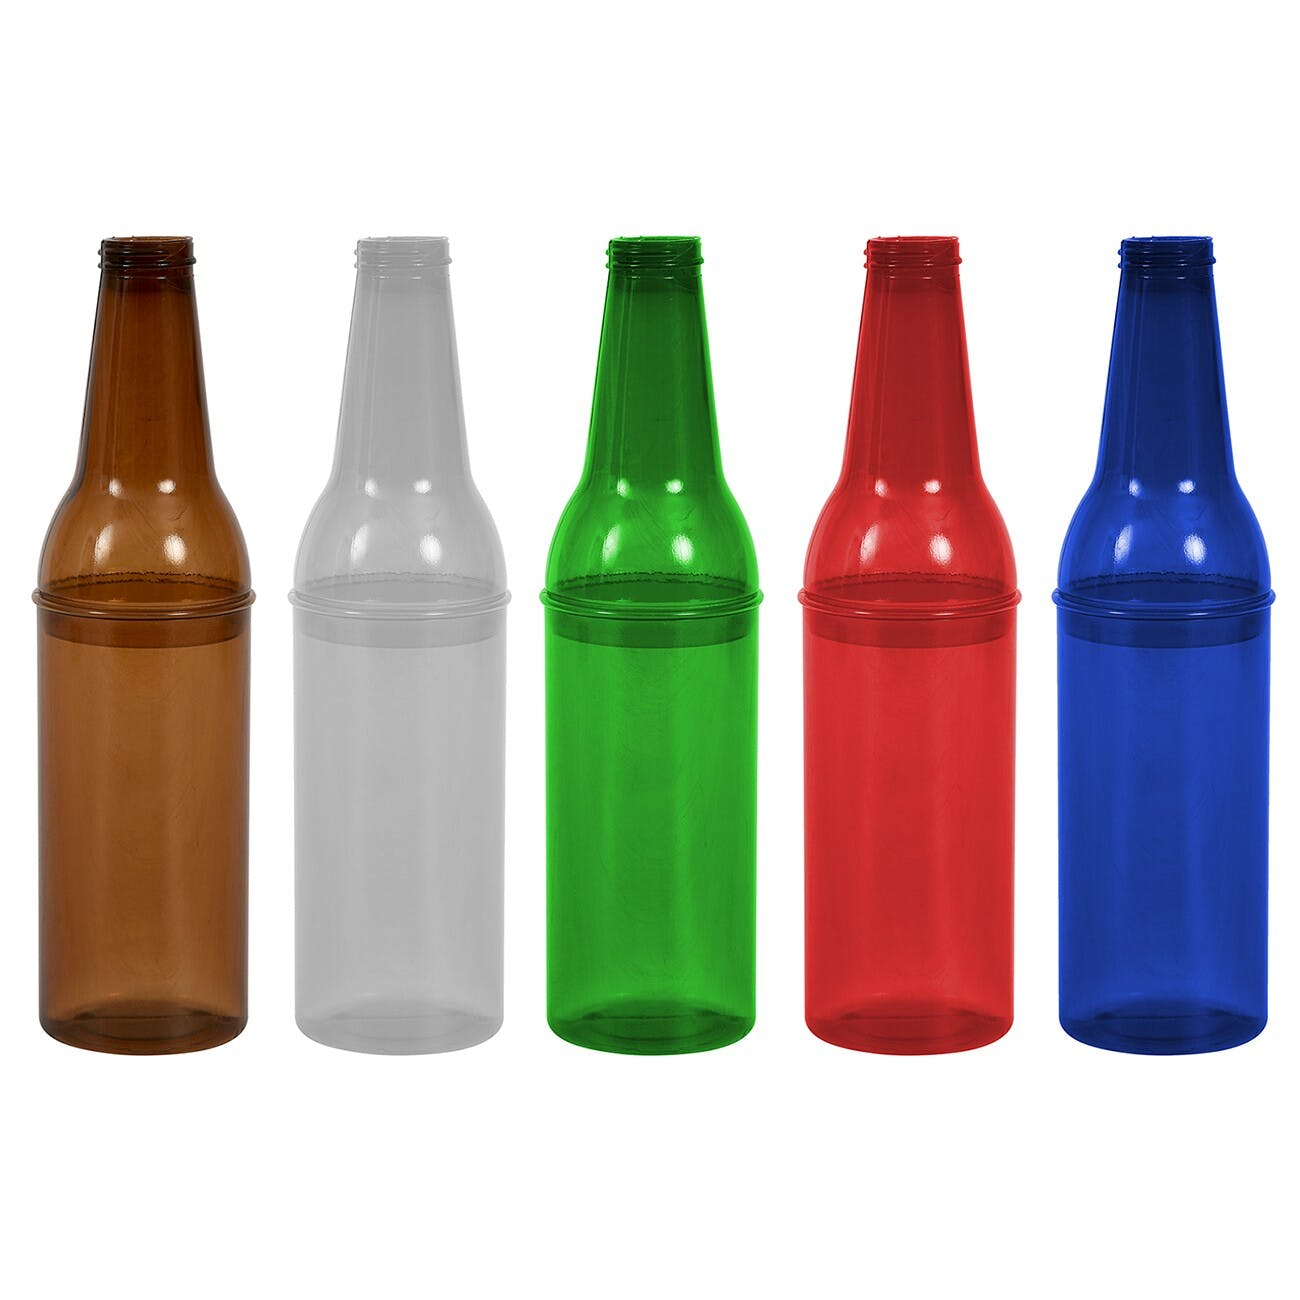 16 Oz. Beer Bottle Cup (Item # DFNLU-JQQFN) Beer bottle sold by InkEasy